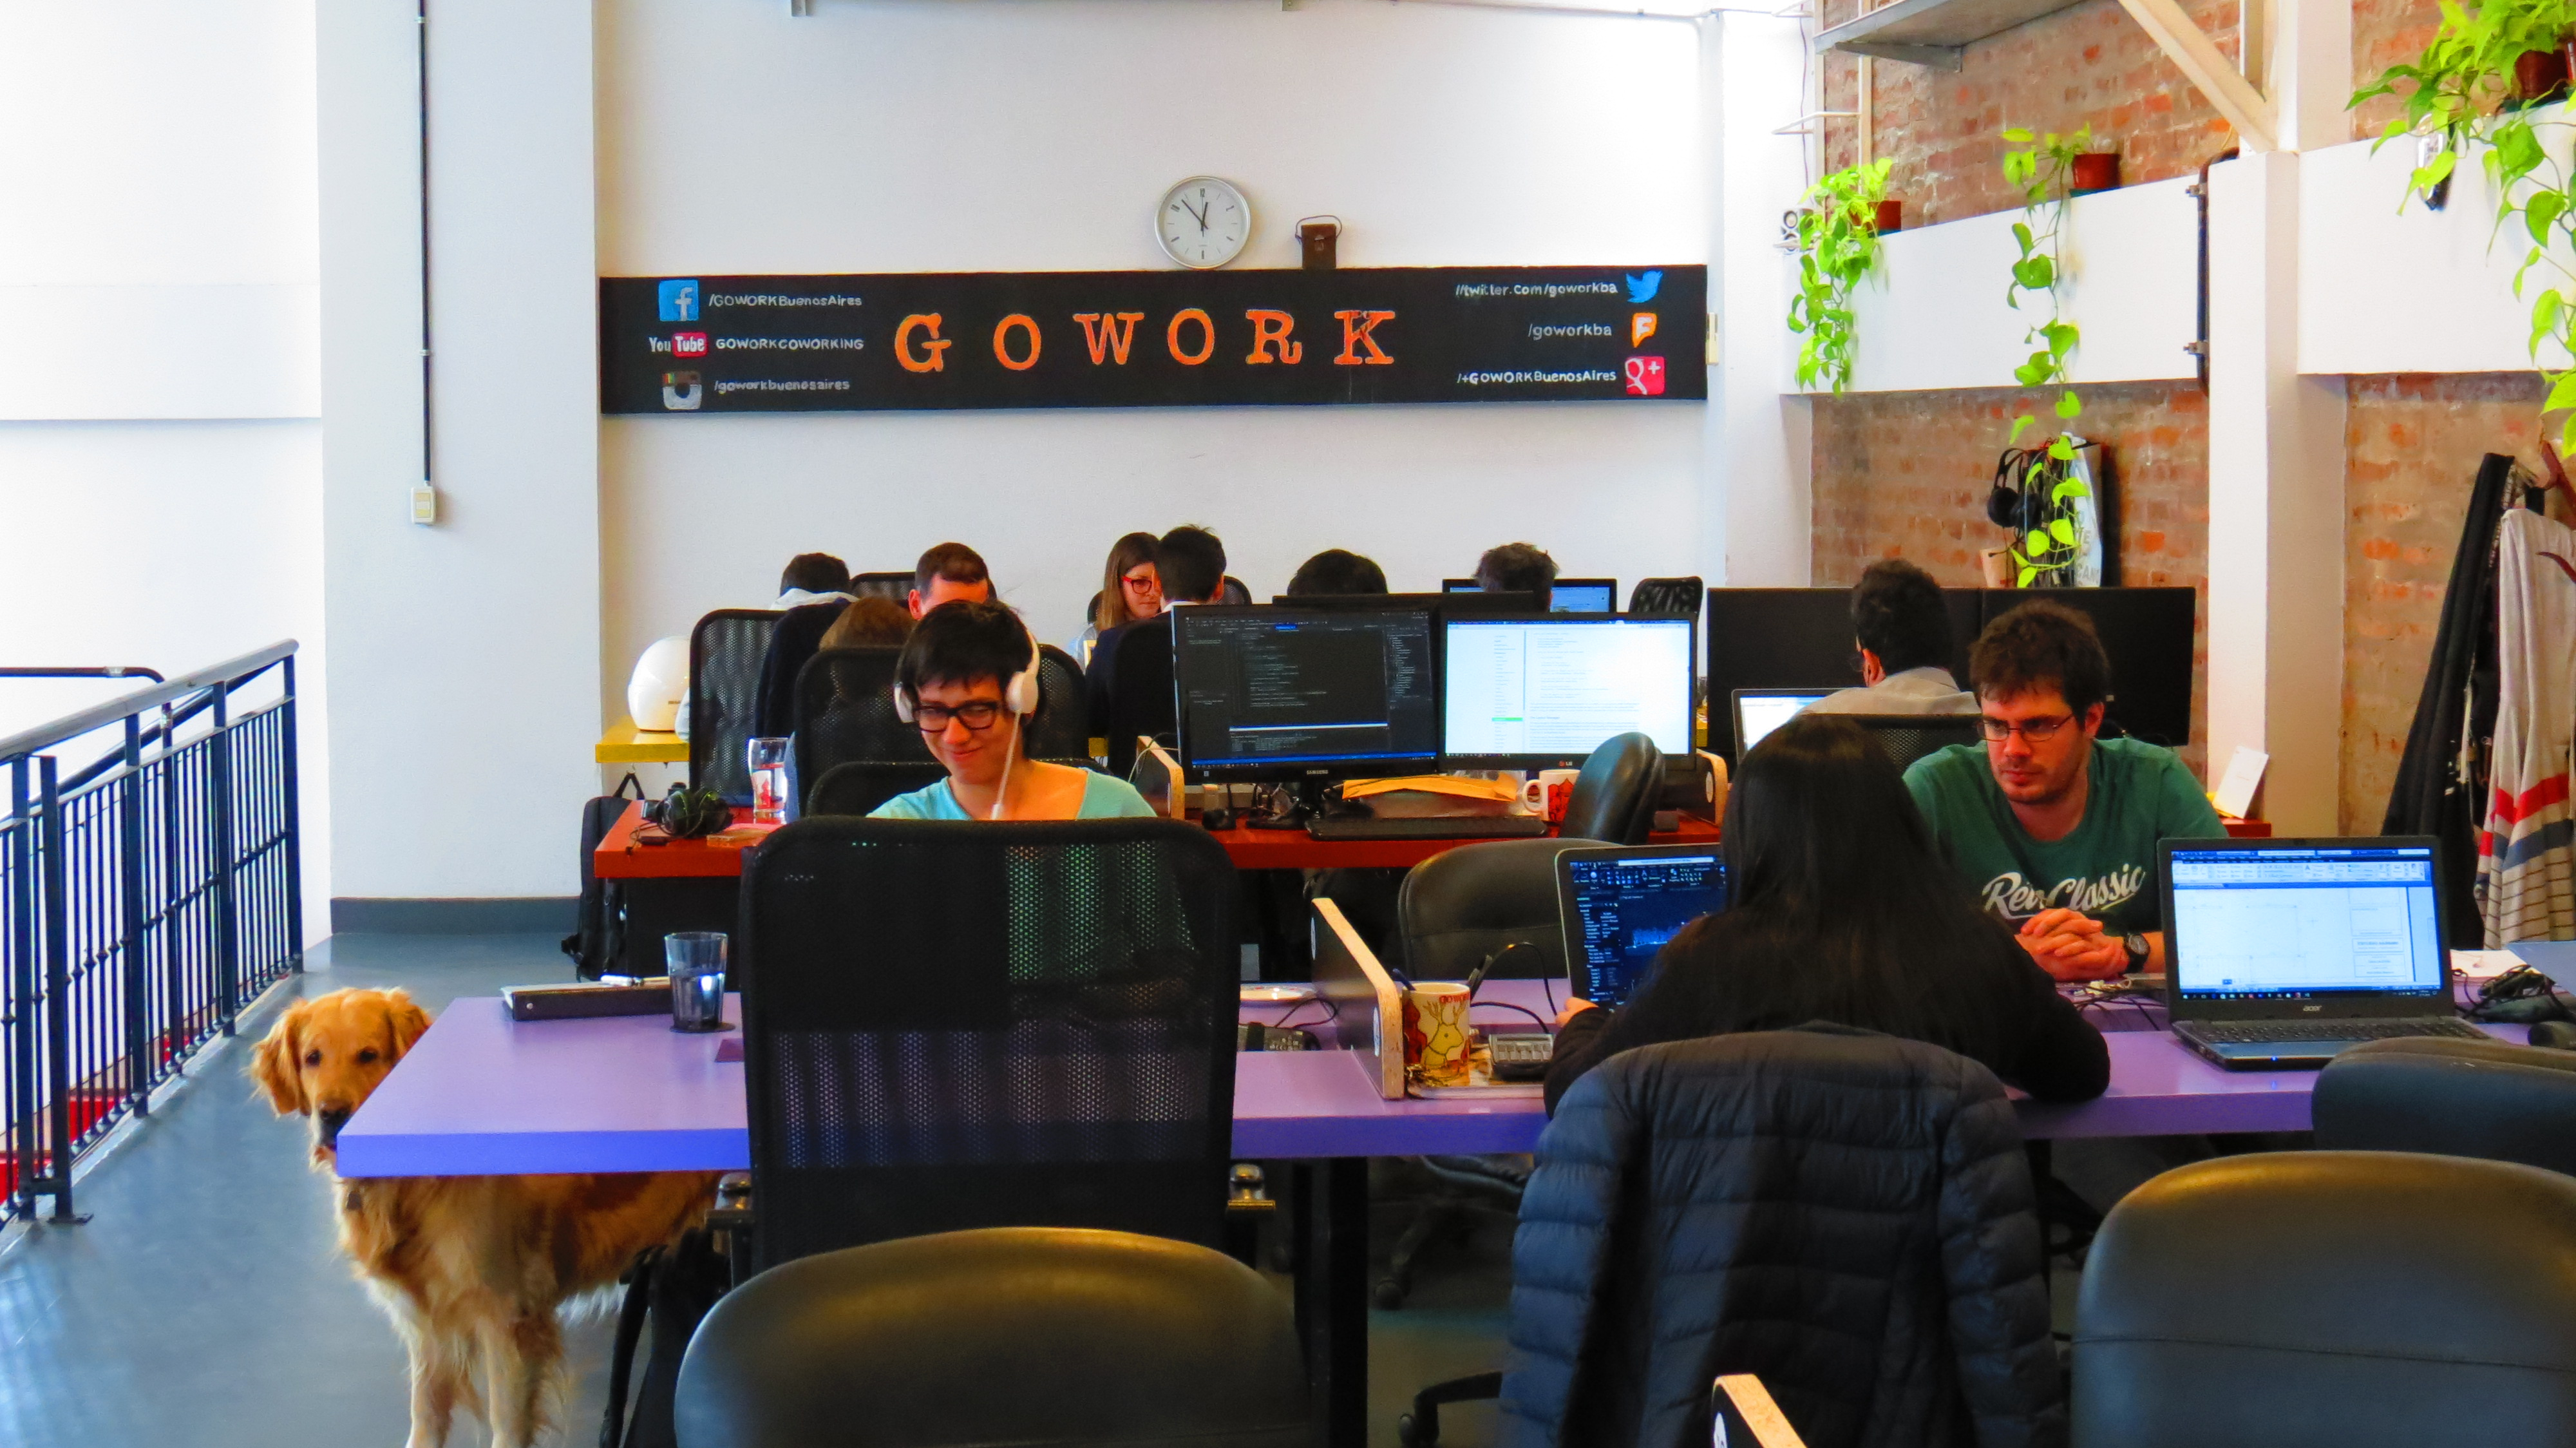 GOWORK COWORKING - open space